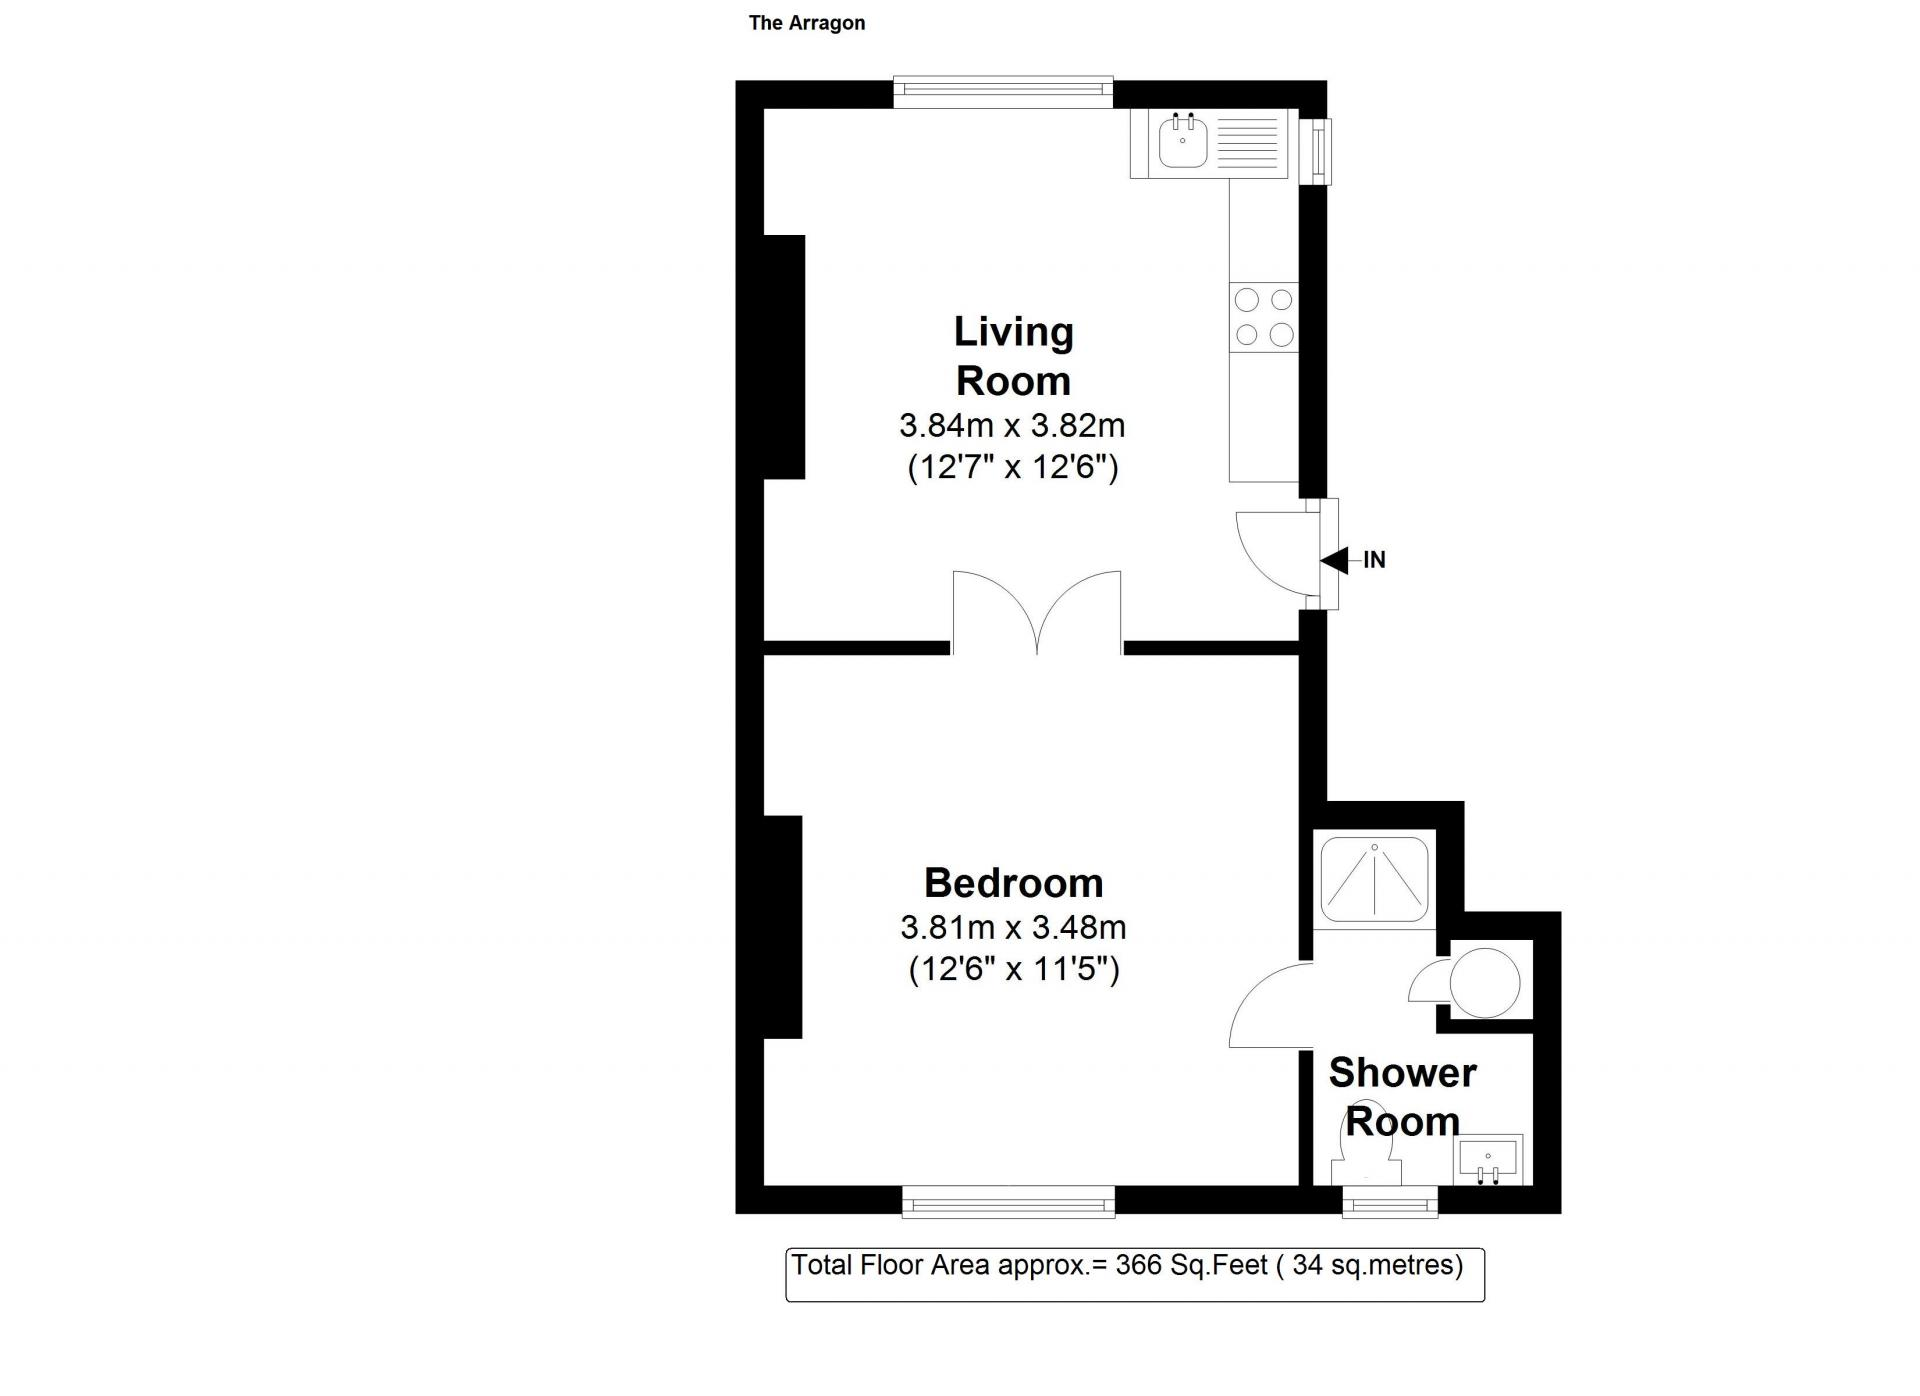 Floor plan 4 at 20 The Barons Apartments, St Margarets, London